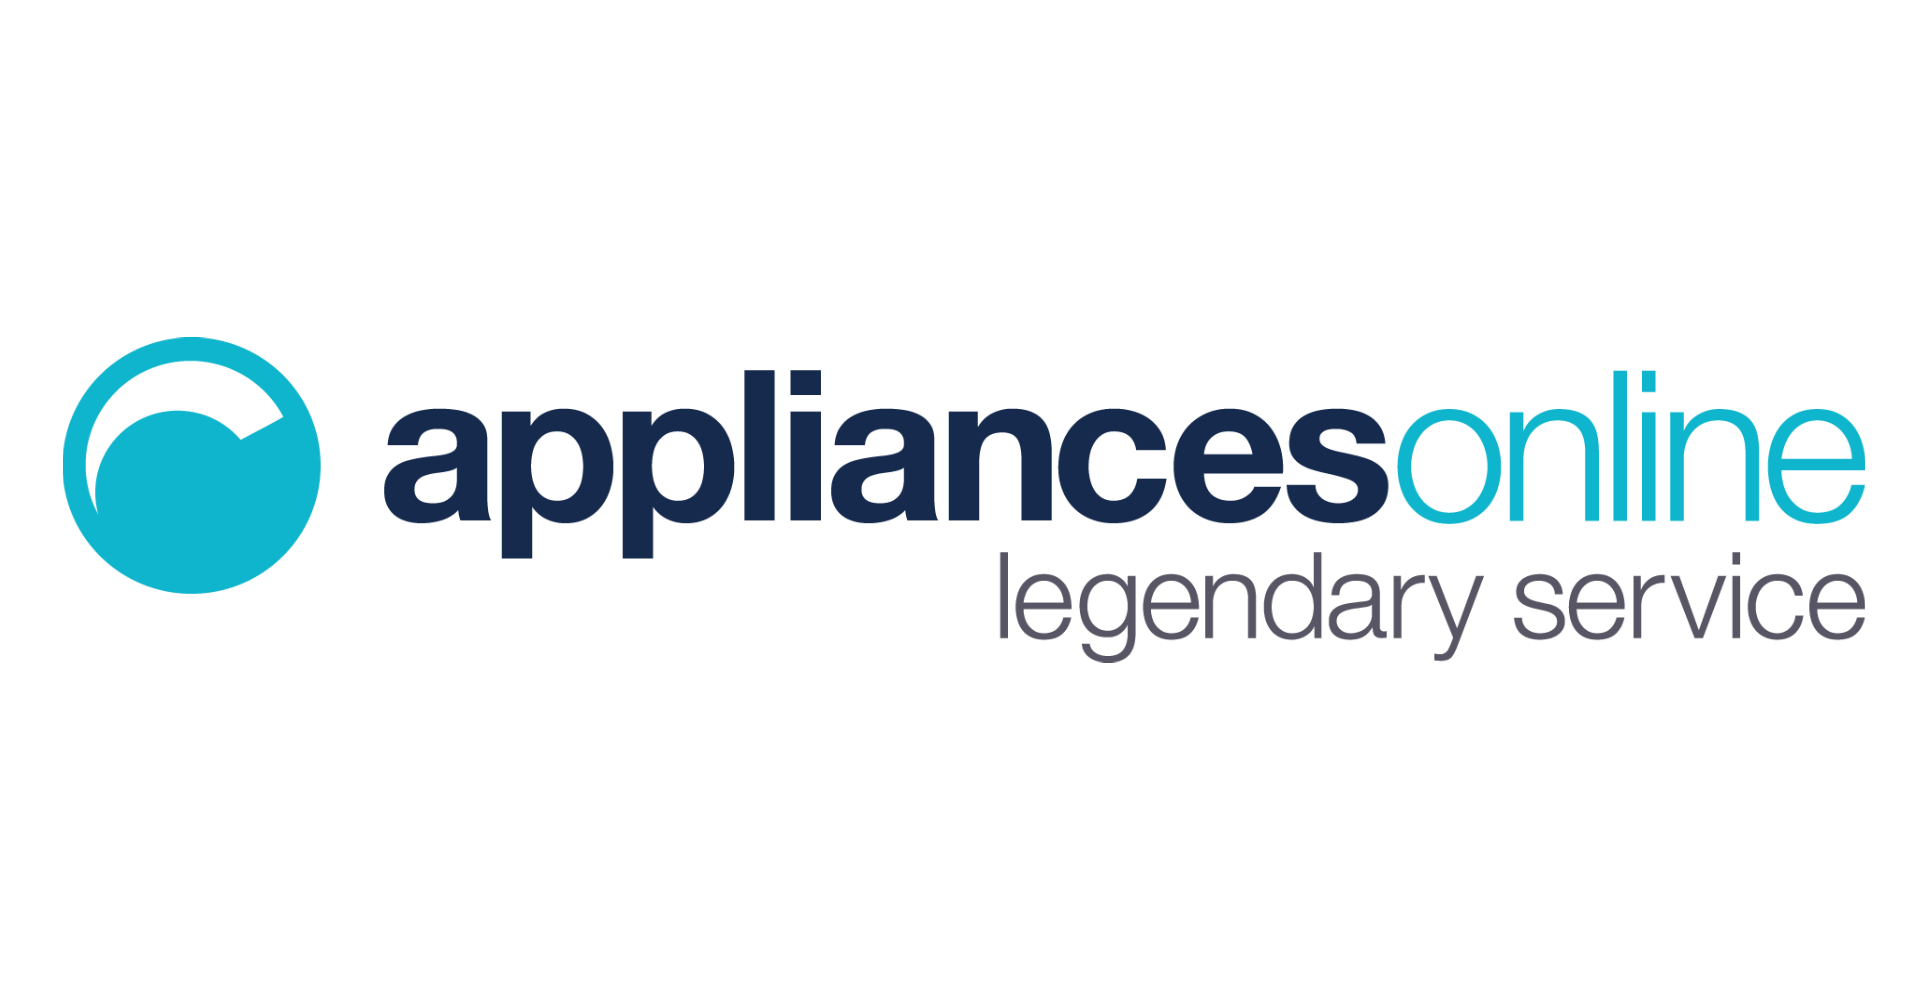 Appliances Online